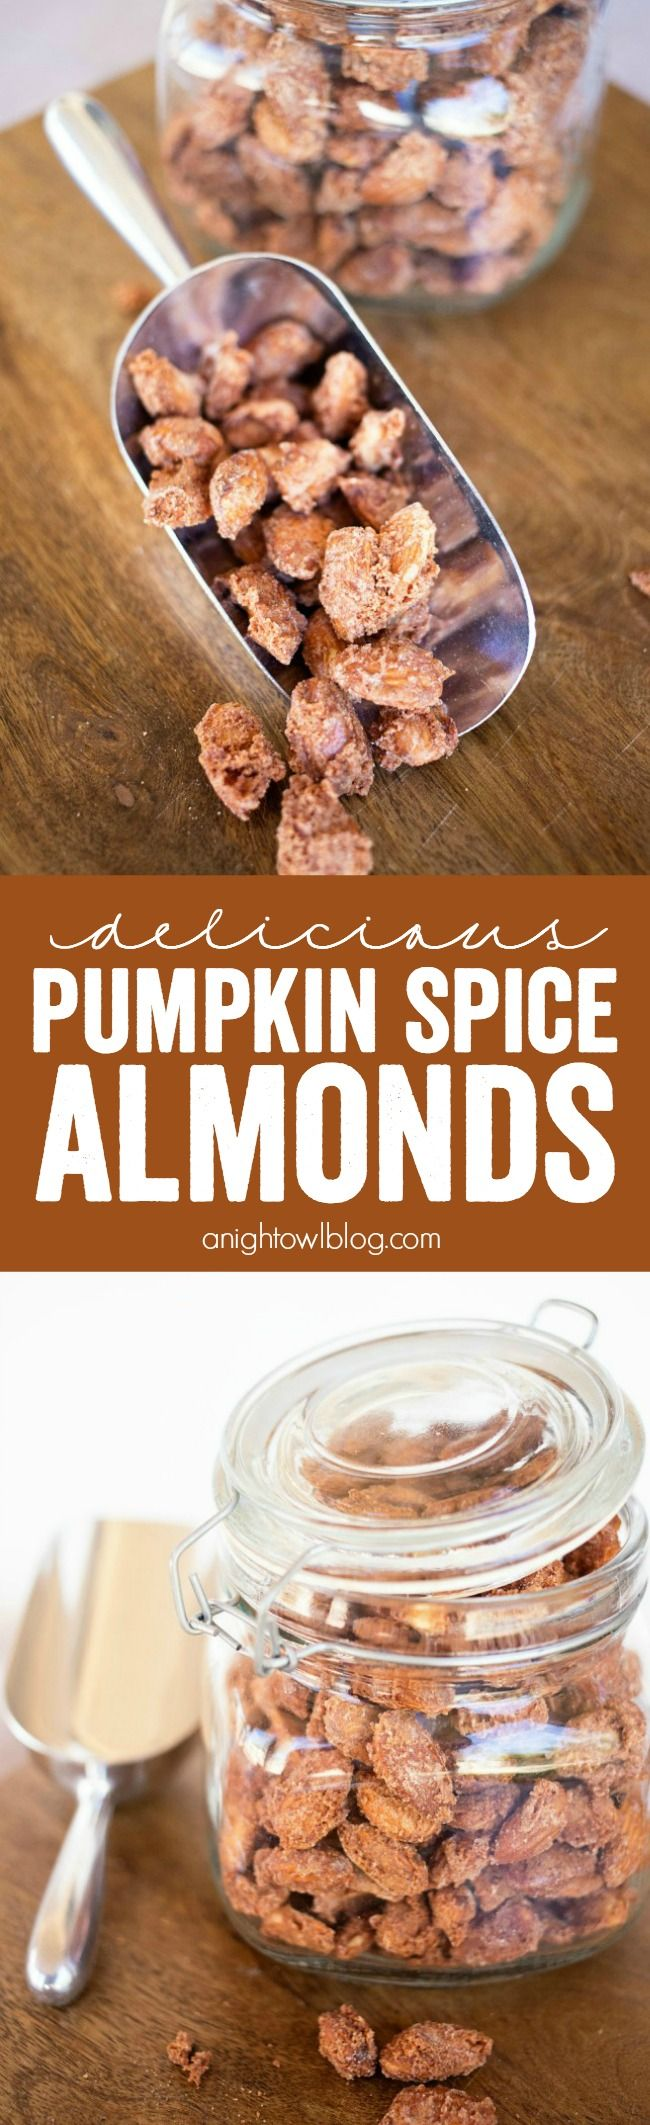 These Pumpkin Spice Almonds are easy to make and the perfect snack for the holiday season! Would also make a great gift!